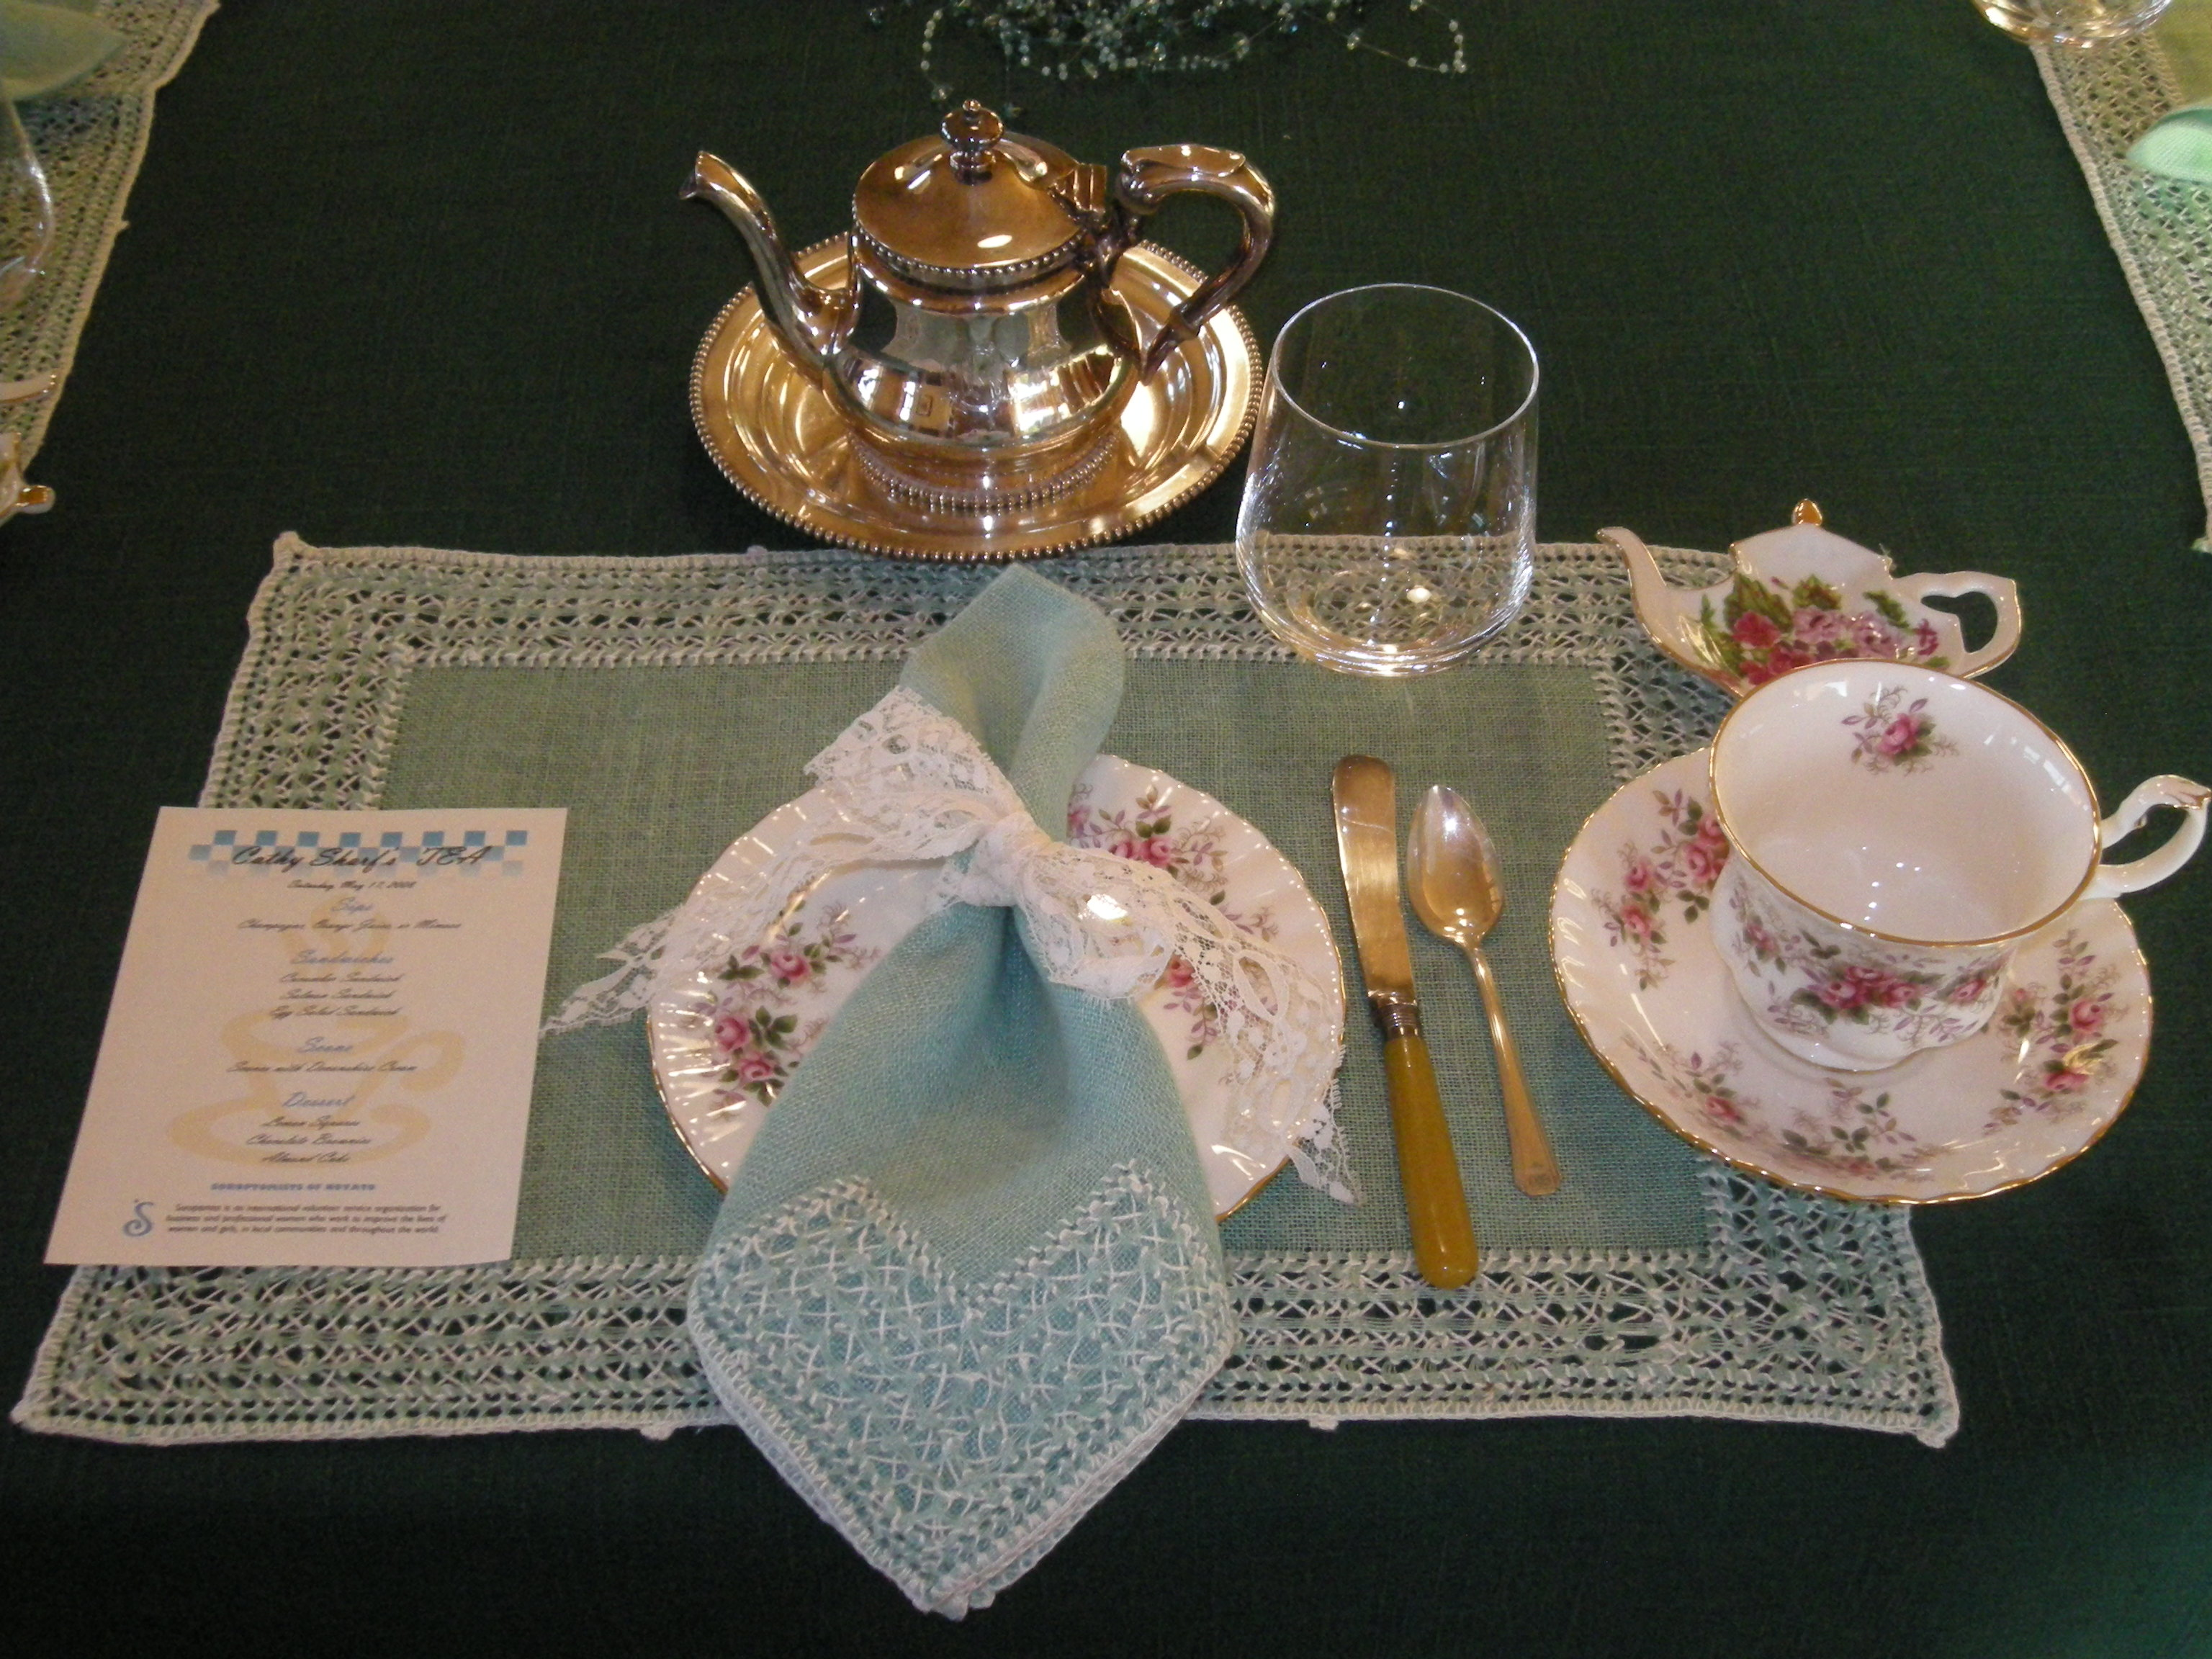 One place setting